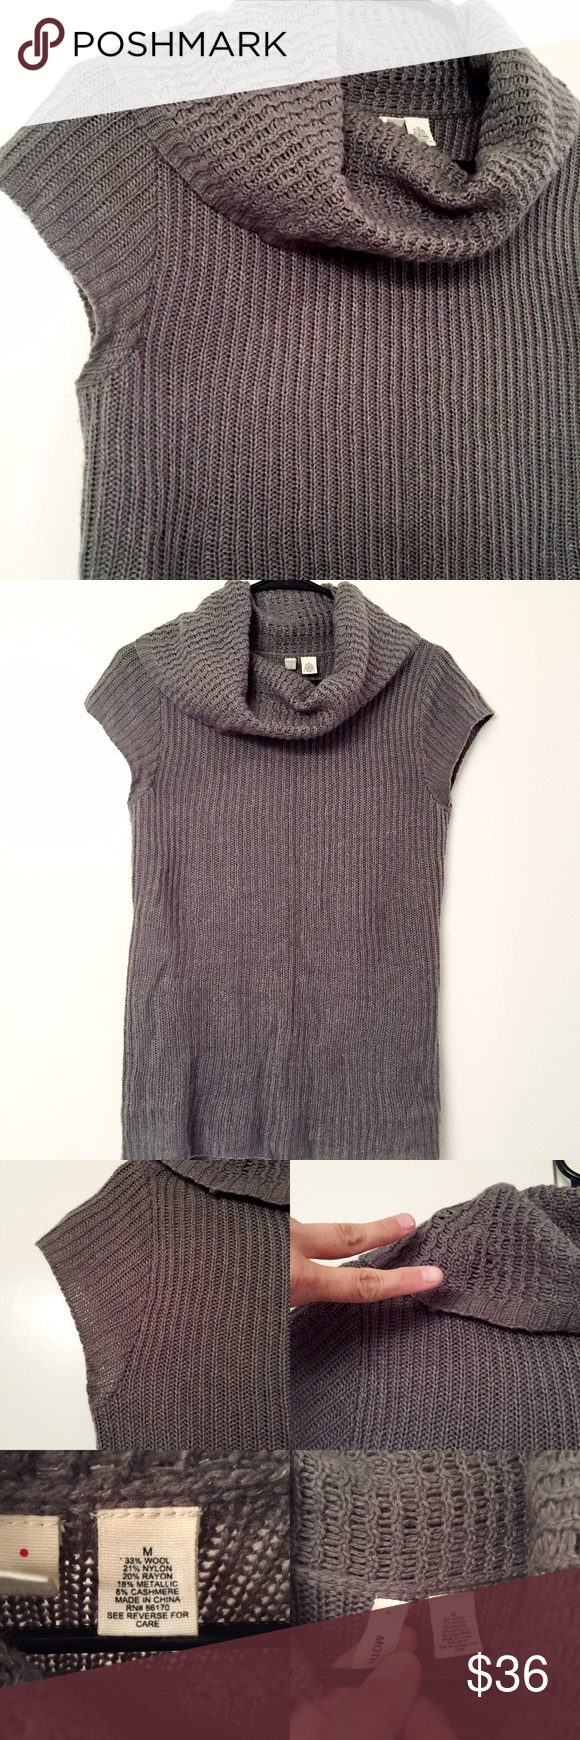 reduced* Moth (anthro) gray & copper cowl sweater | Moth, Cowl ...